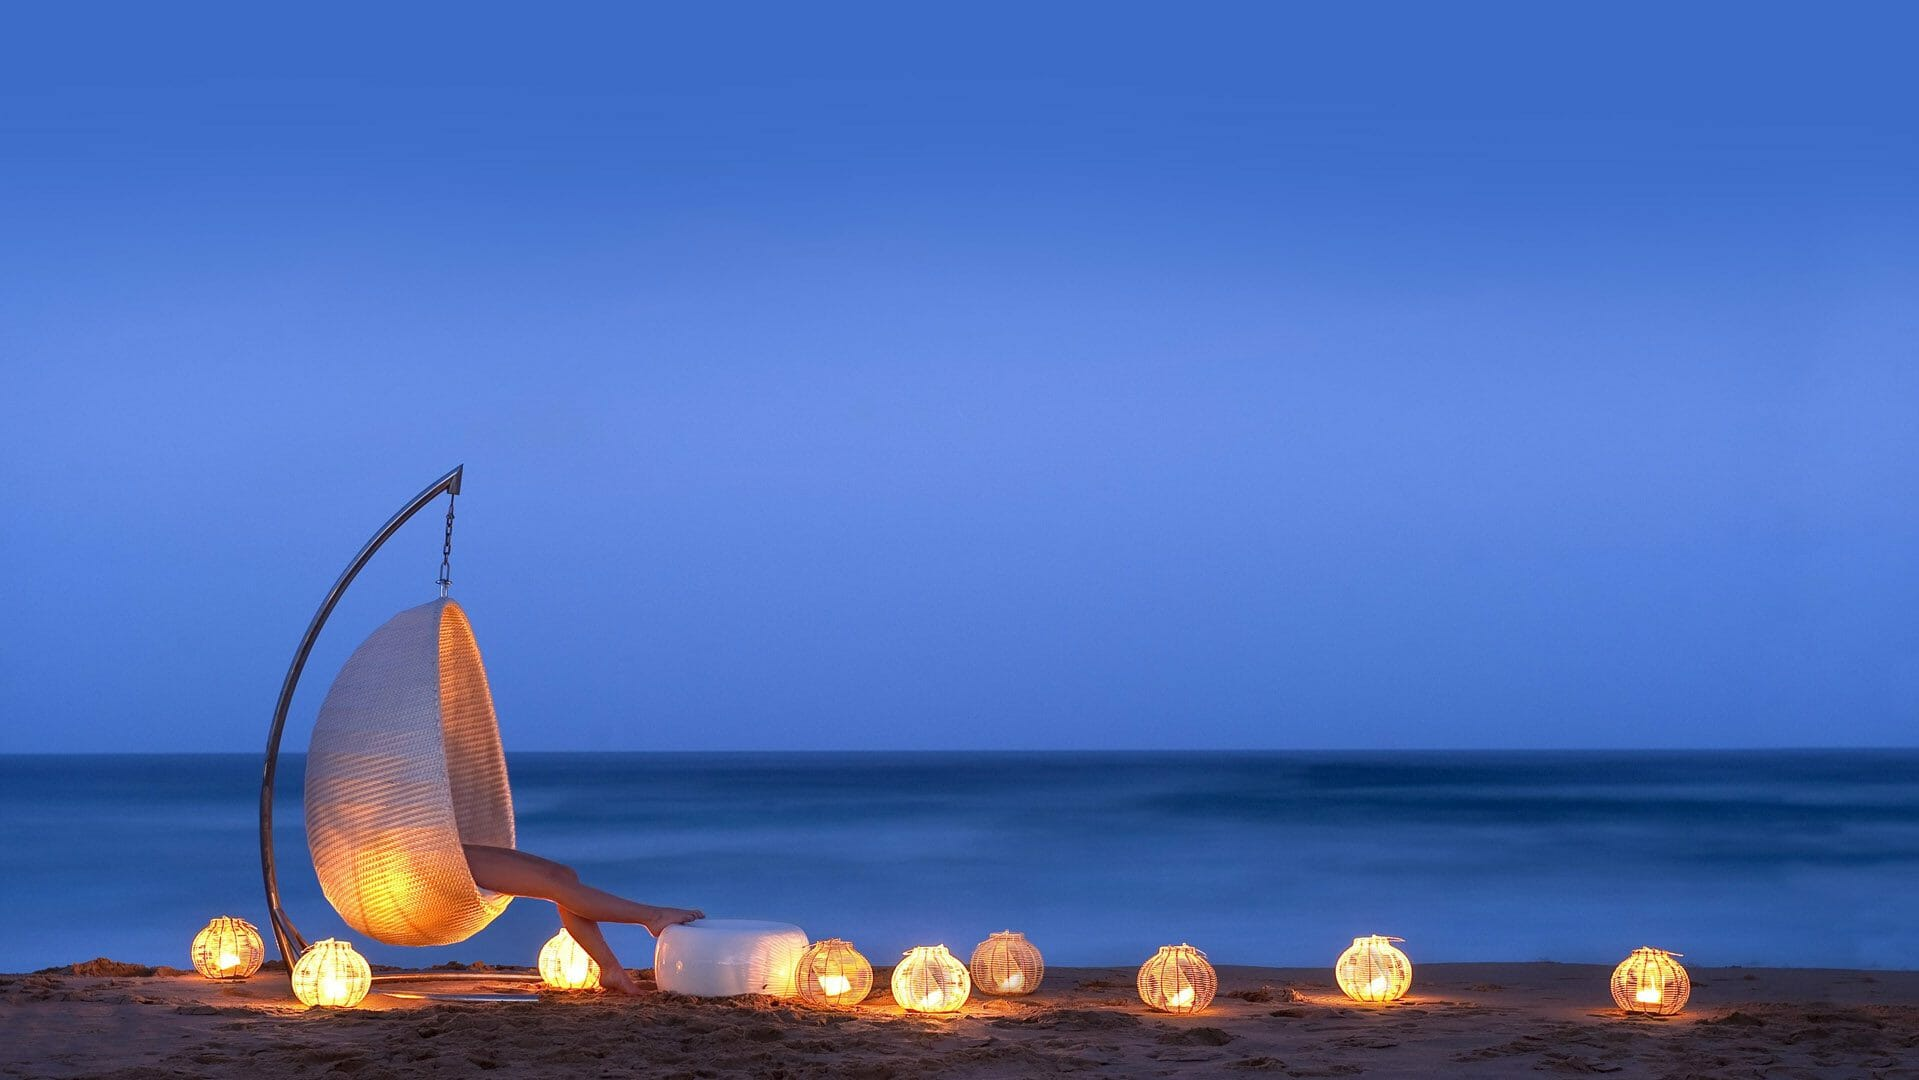 woman in a pearl shaped chair sits on the beach with lanterns at night